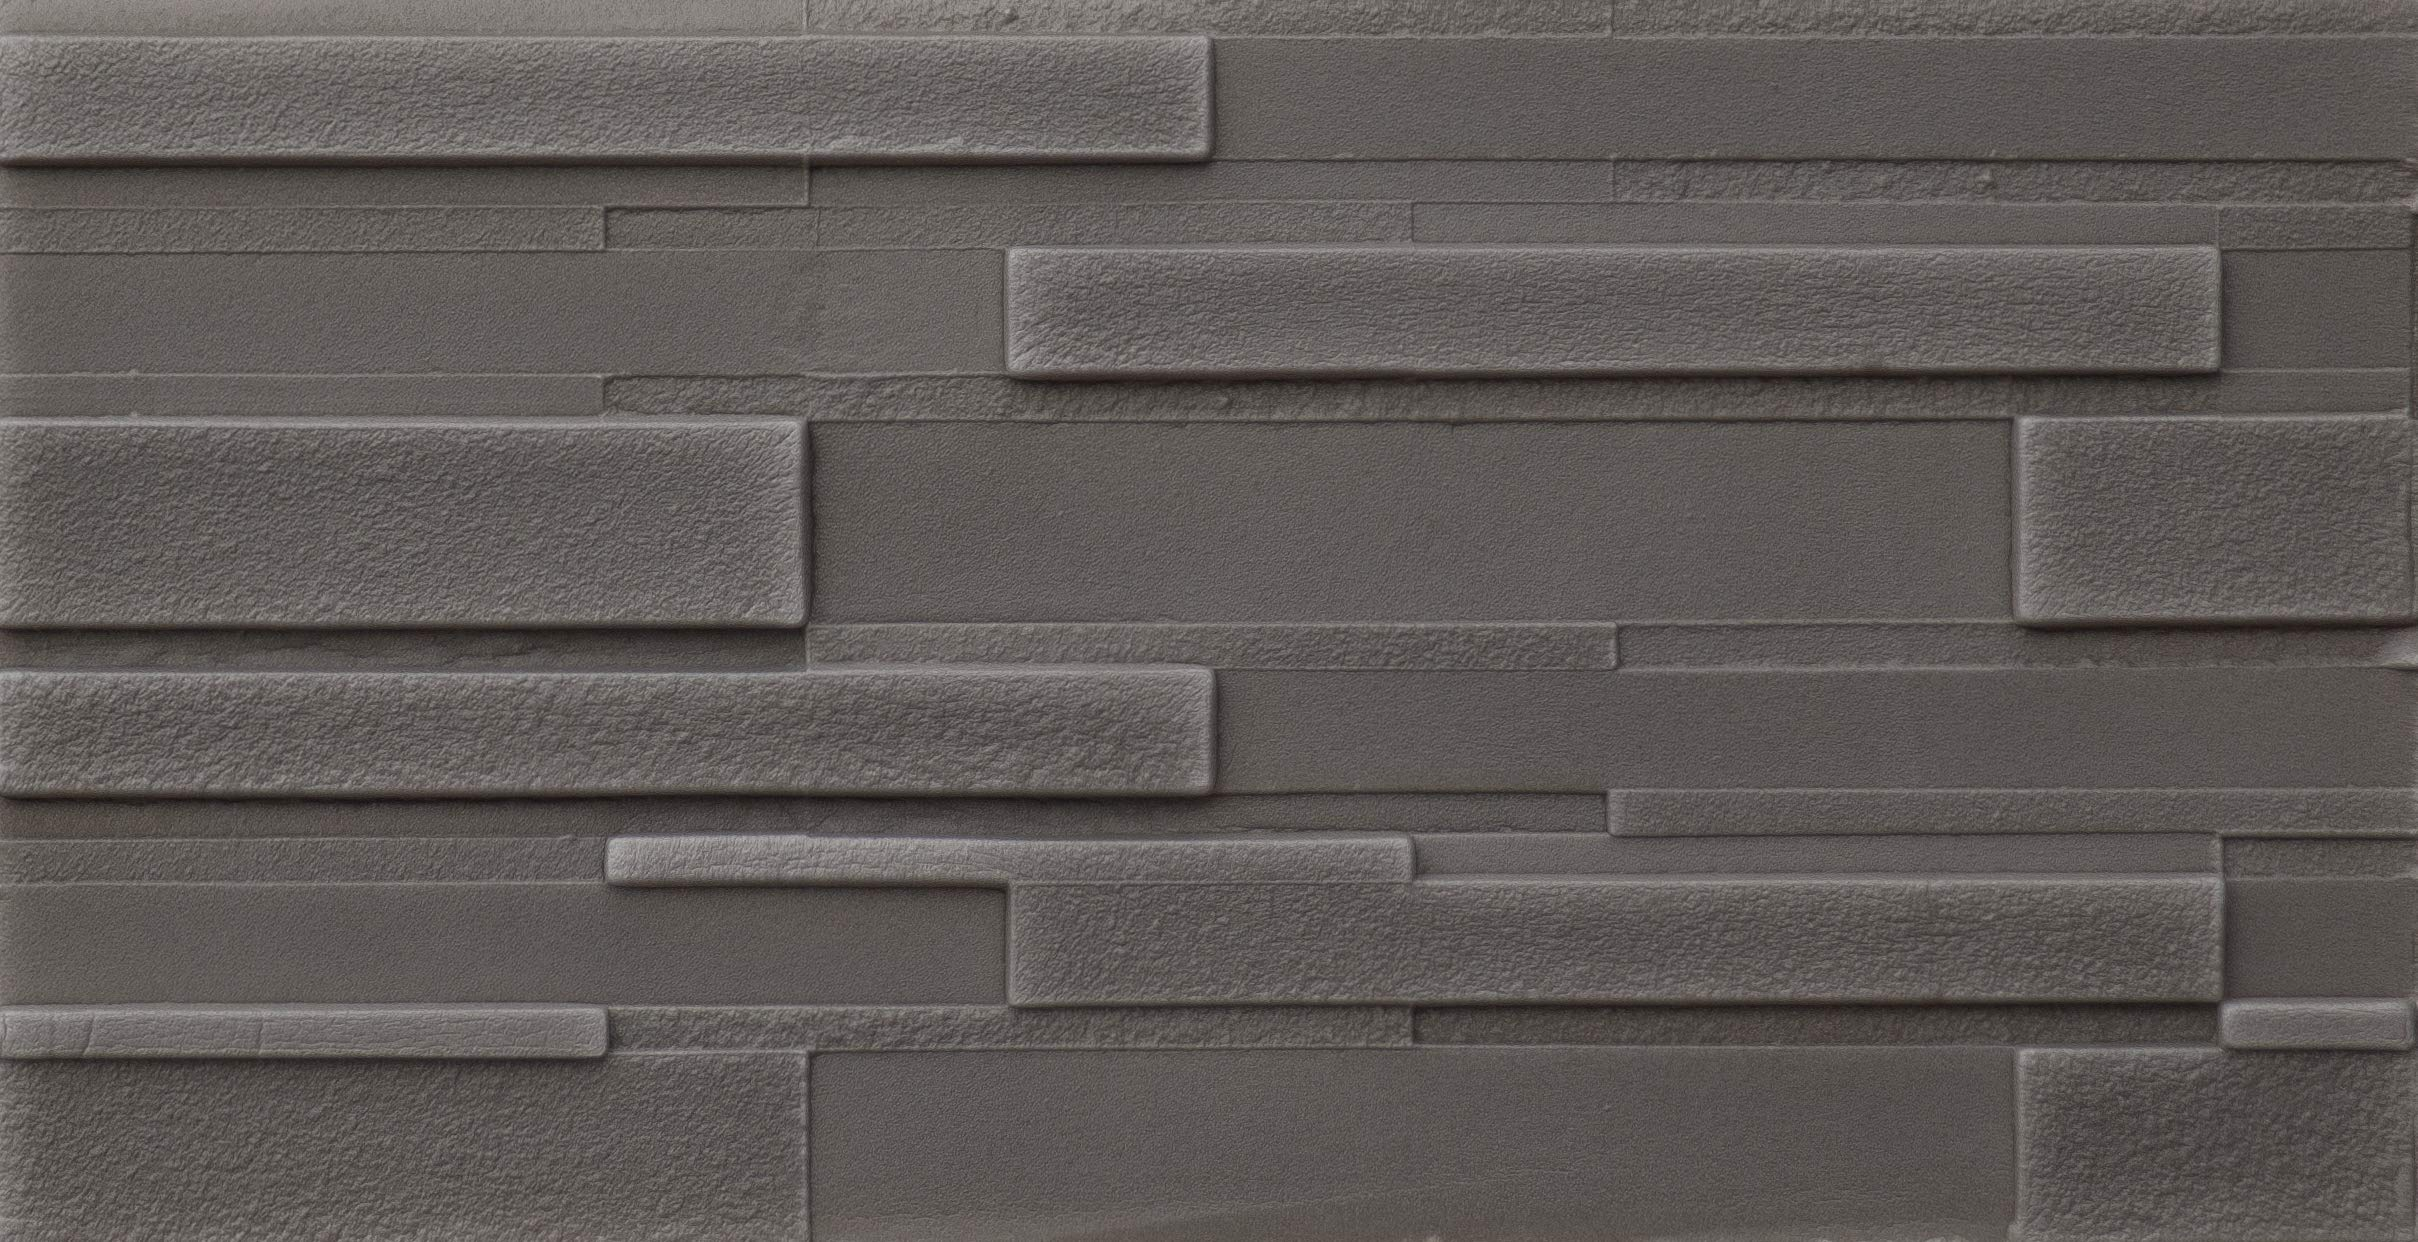 Light Grey Sandstone by ImagiWall, Peel and Stick 3D Foam Wall Tiles (4-Pack, 8 Sq Ft)